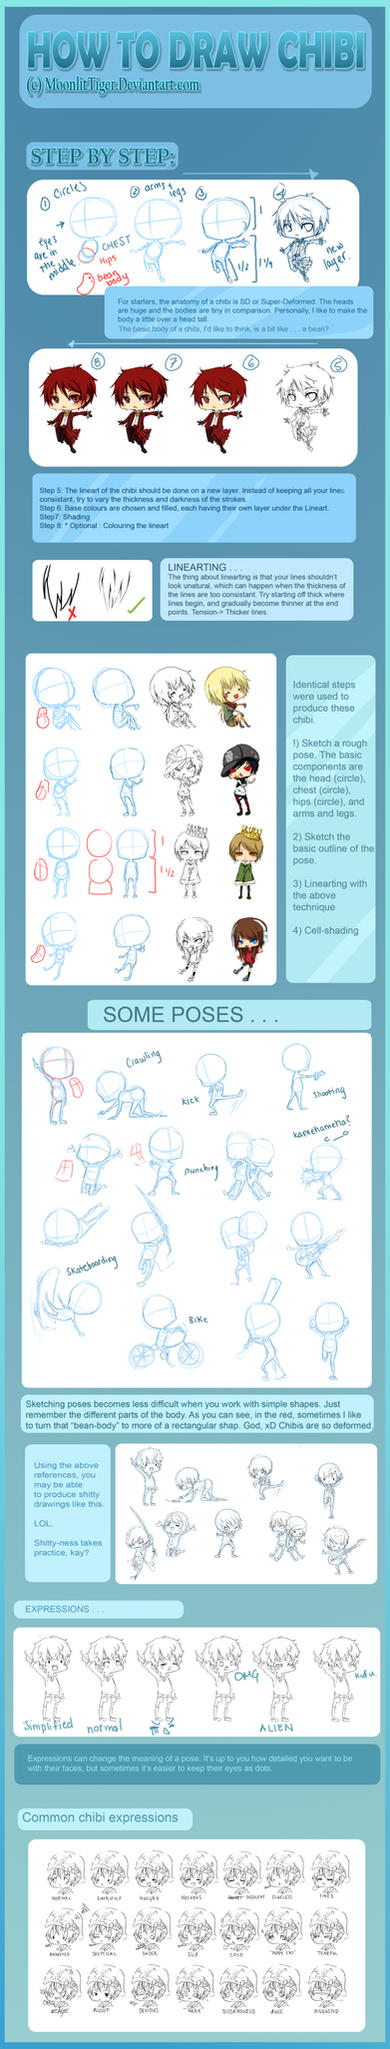 Mega Chibi Tutorial by Calvariae